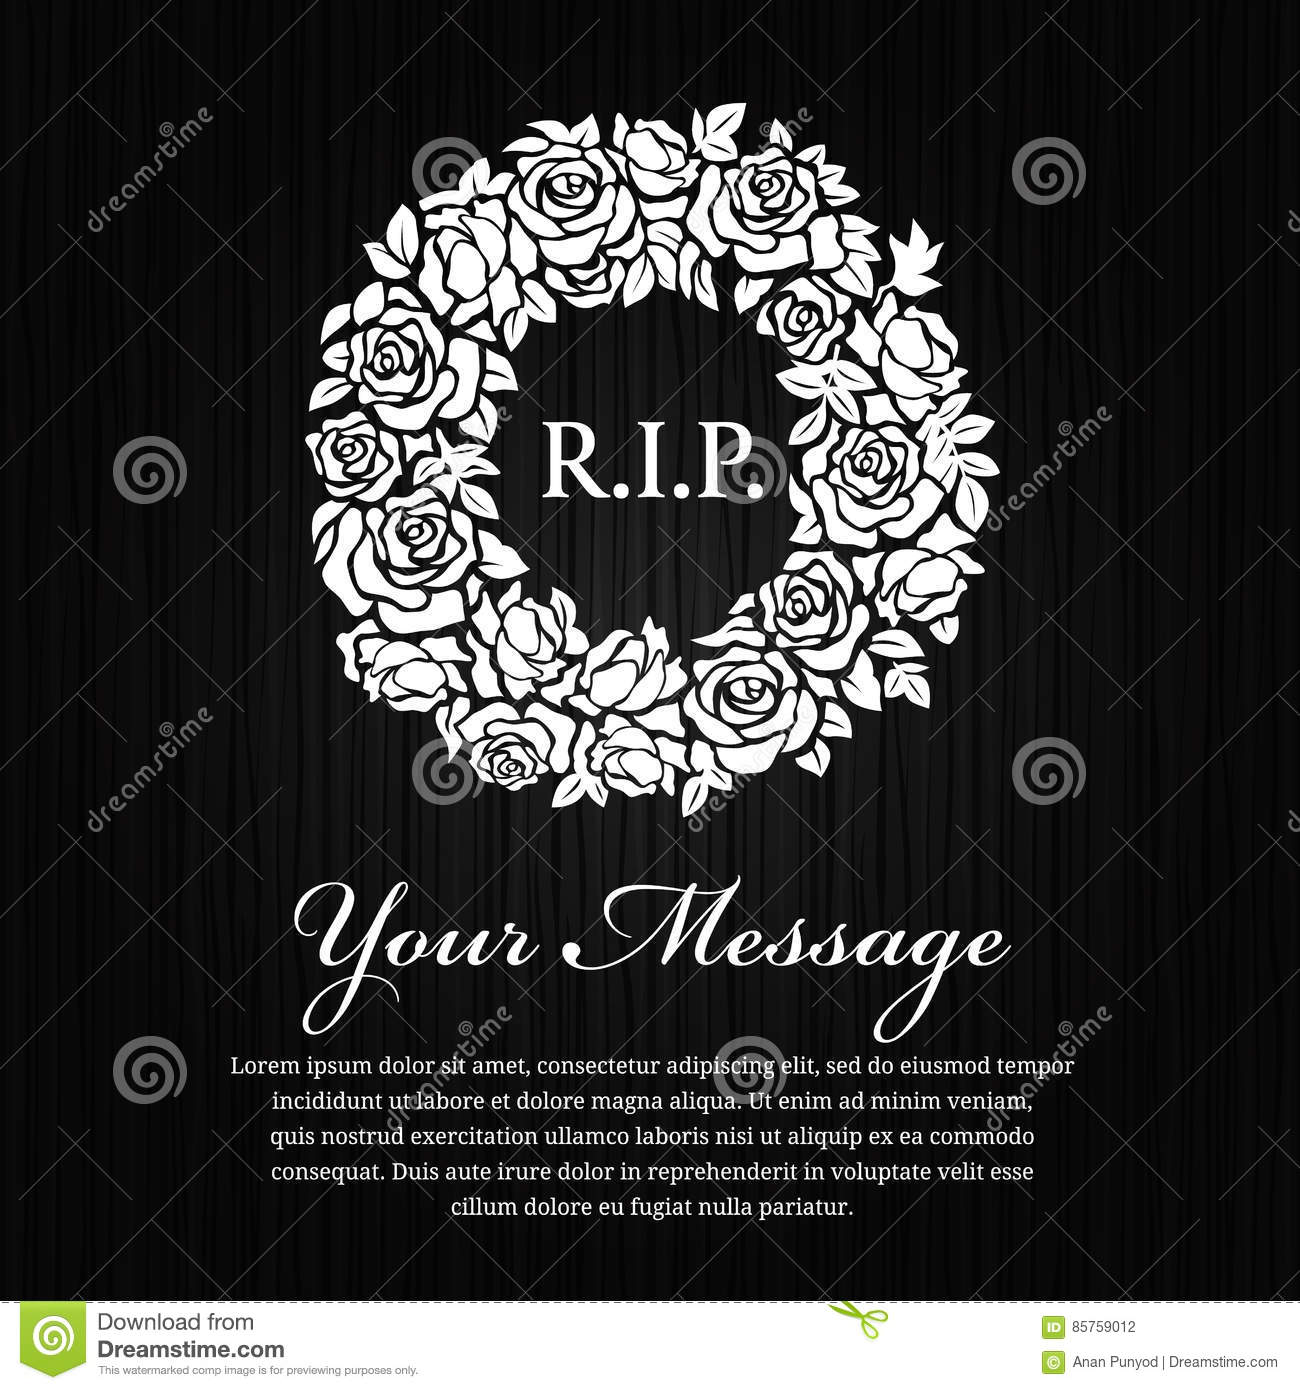 Funeral Card Black Ribbon Bow And White Rose Flower